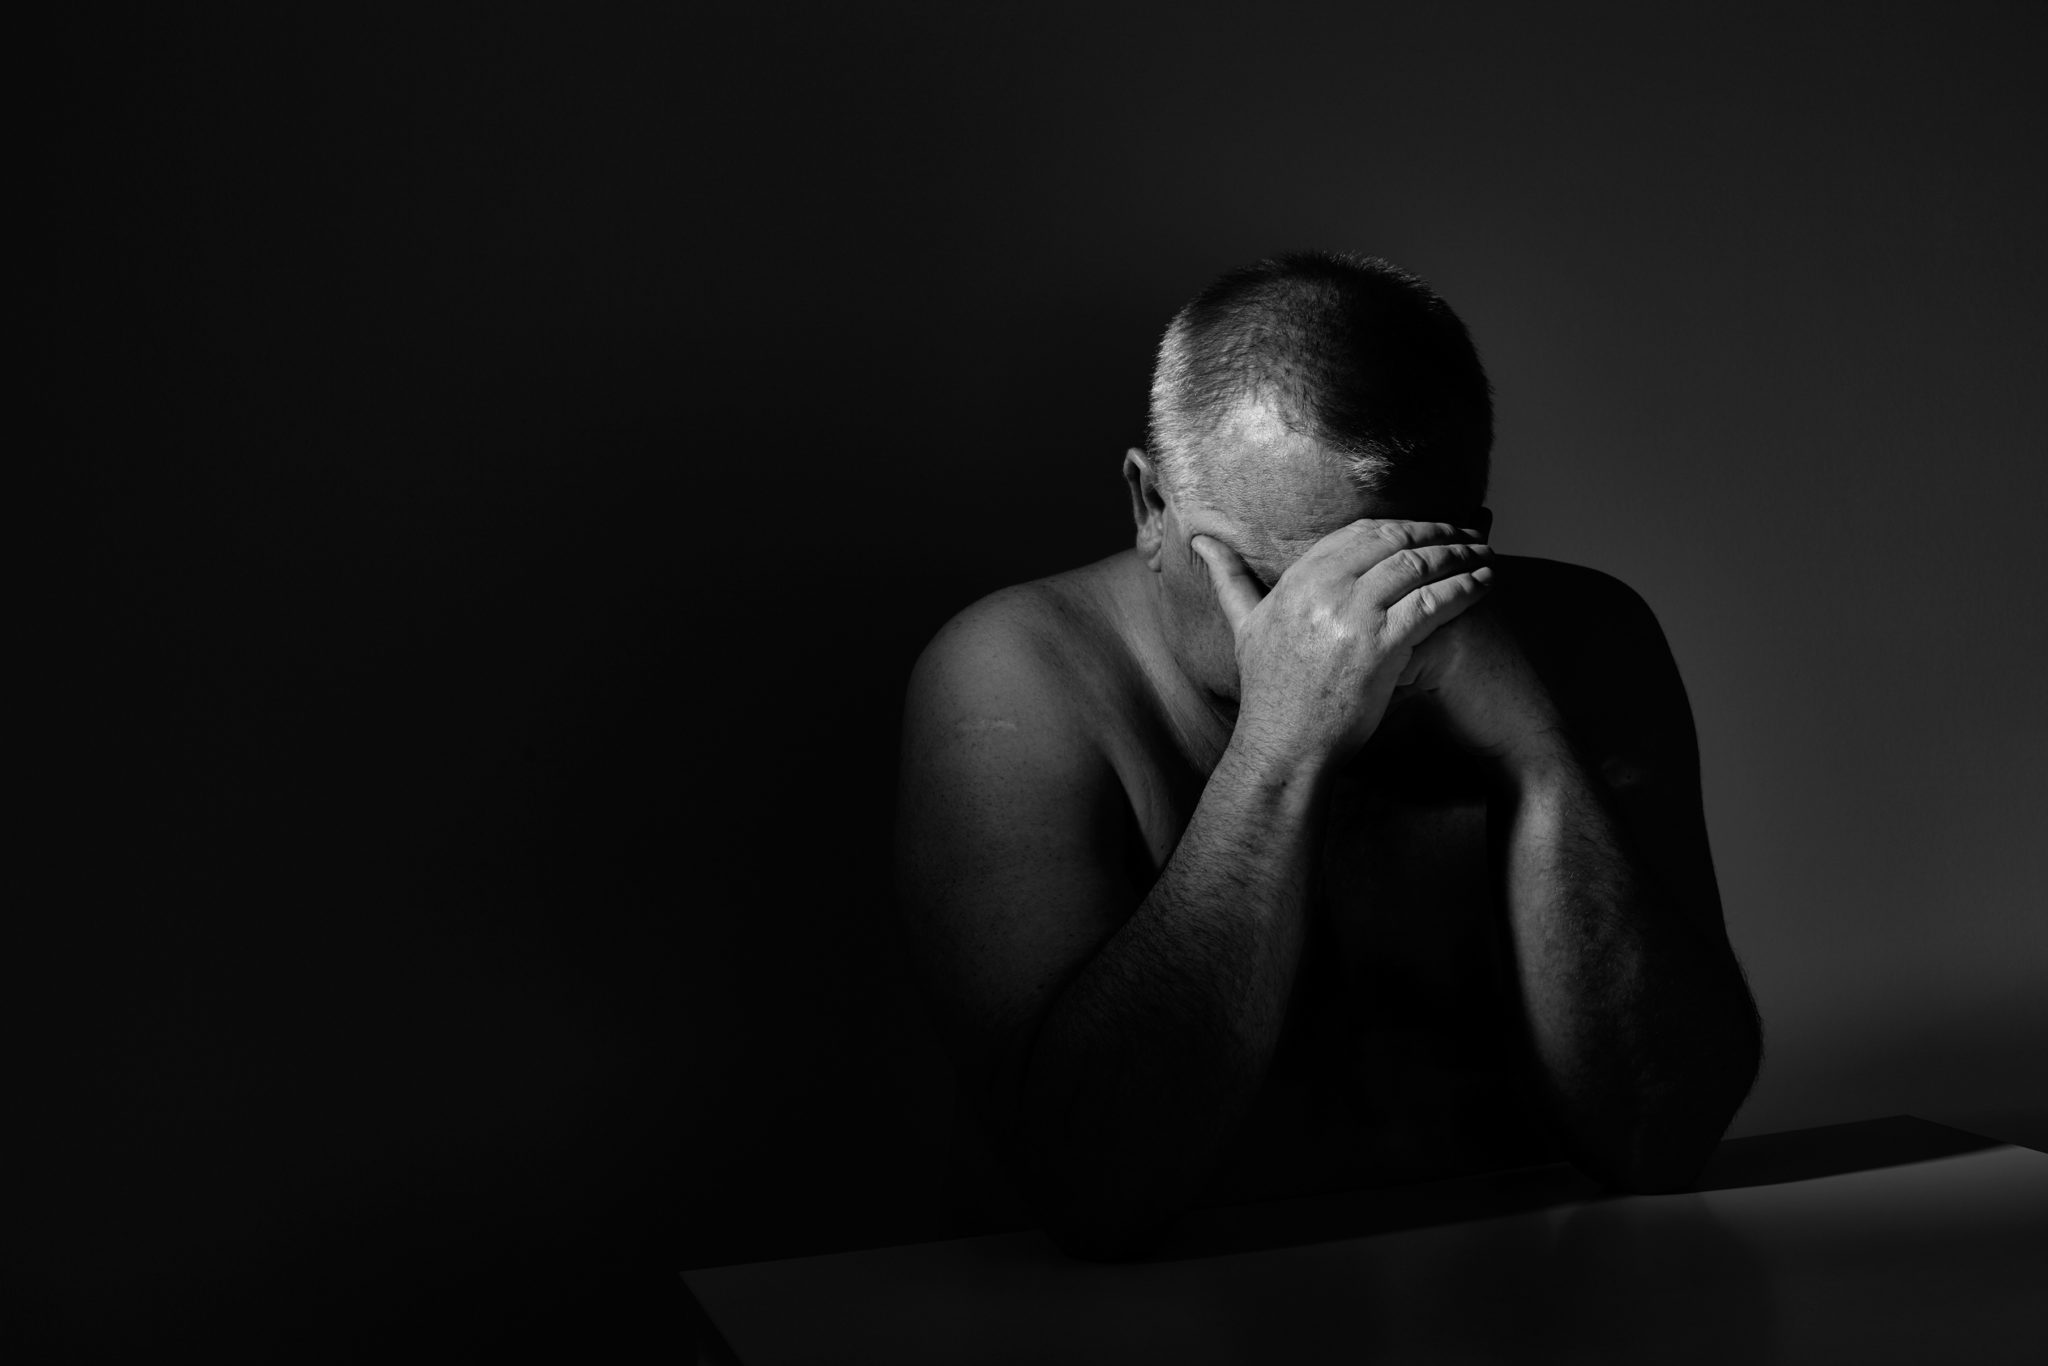 Dramatic black and white close up portrait of aged man sitting with hands on his face against wall - depression concept